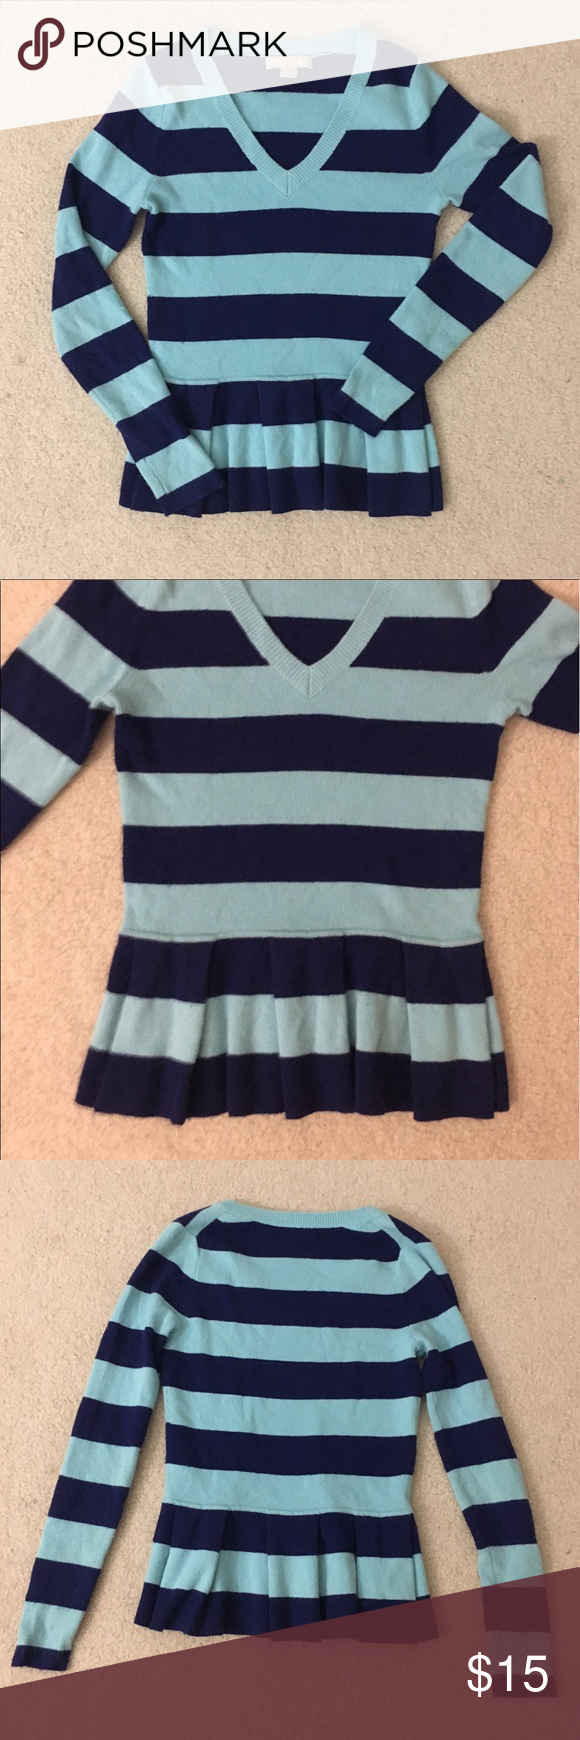 Banana Republic Peplum Blue Striped Sweater | More Peplum sweater ...